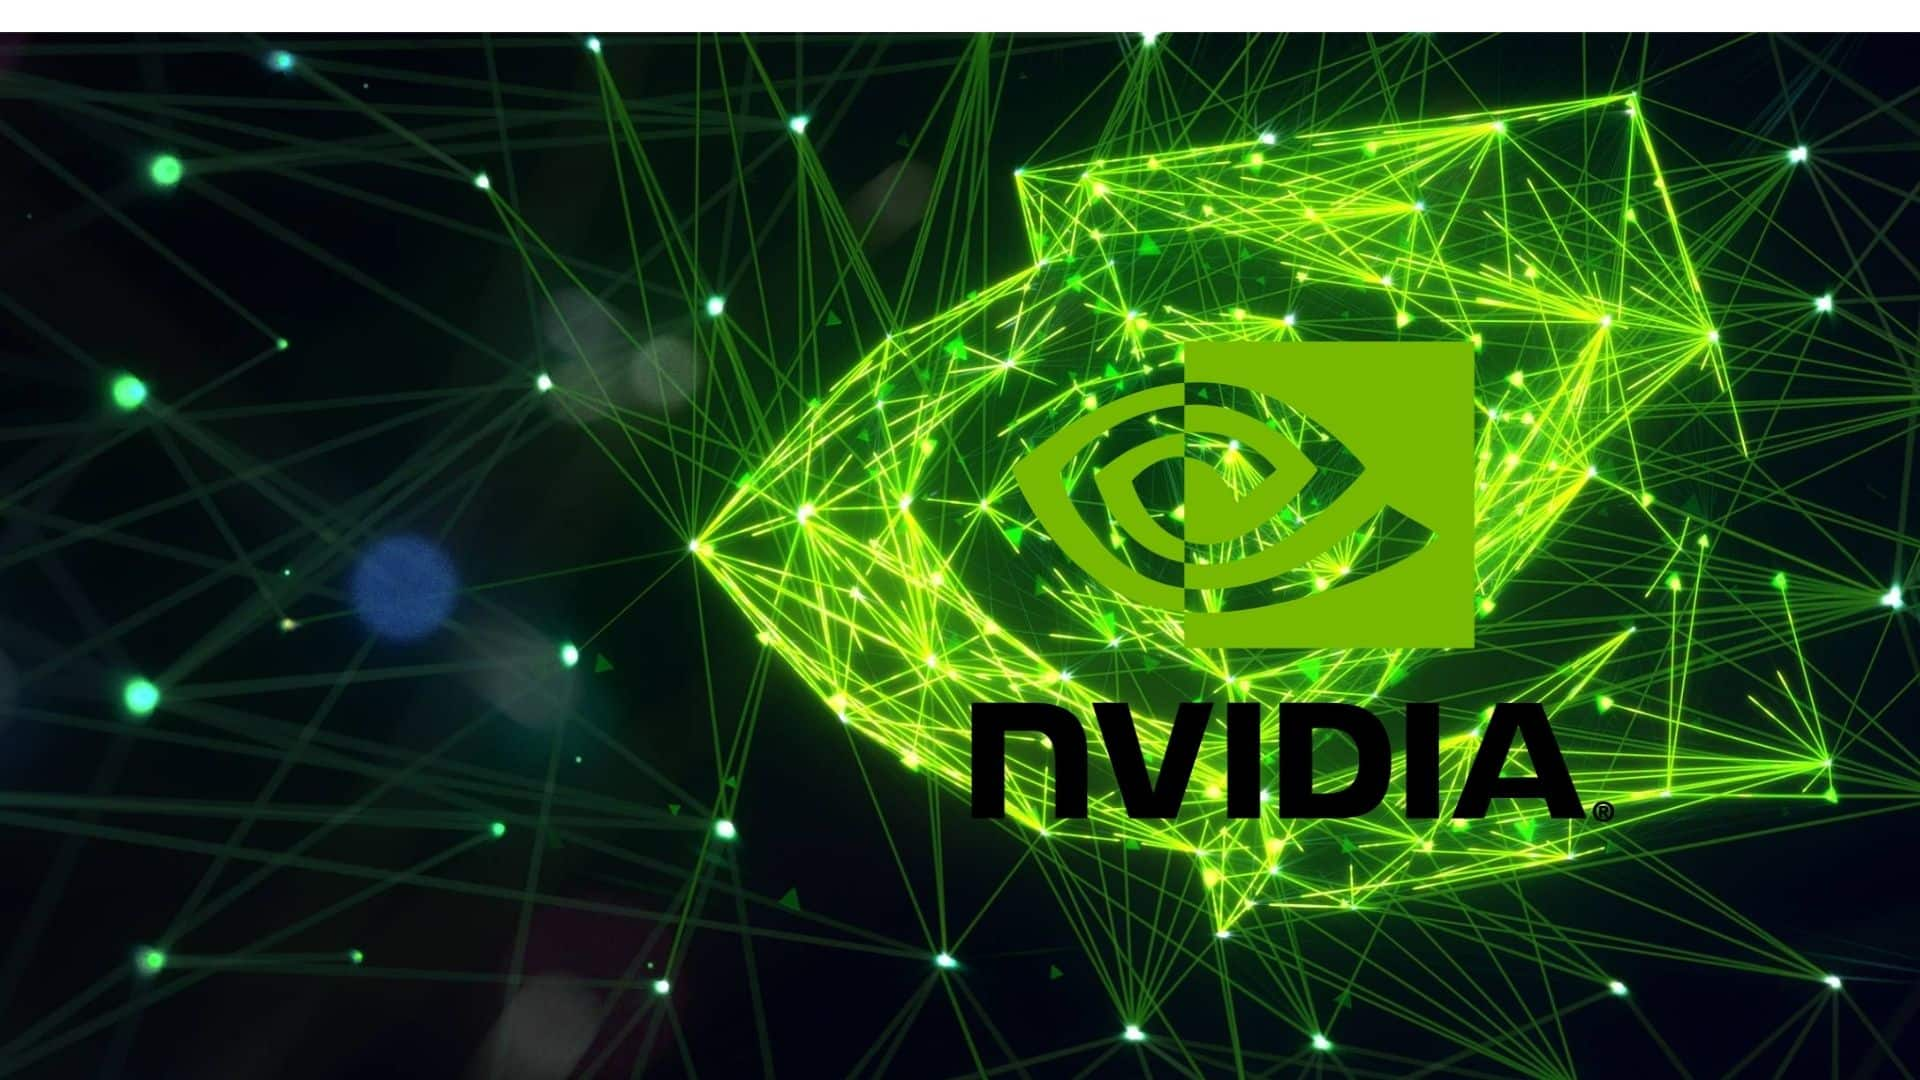 Nvidia : comment le fabricant de GPU est devenu un géant du Big Data